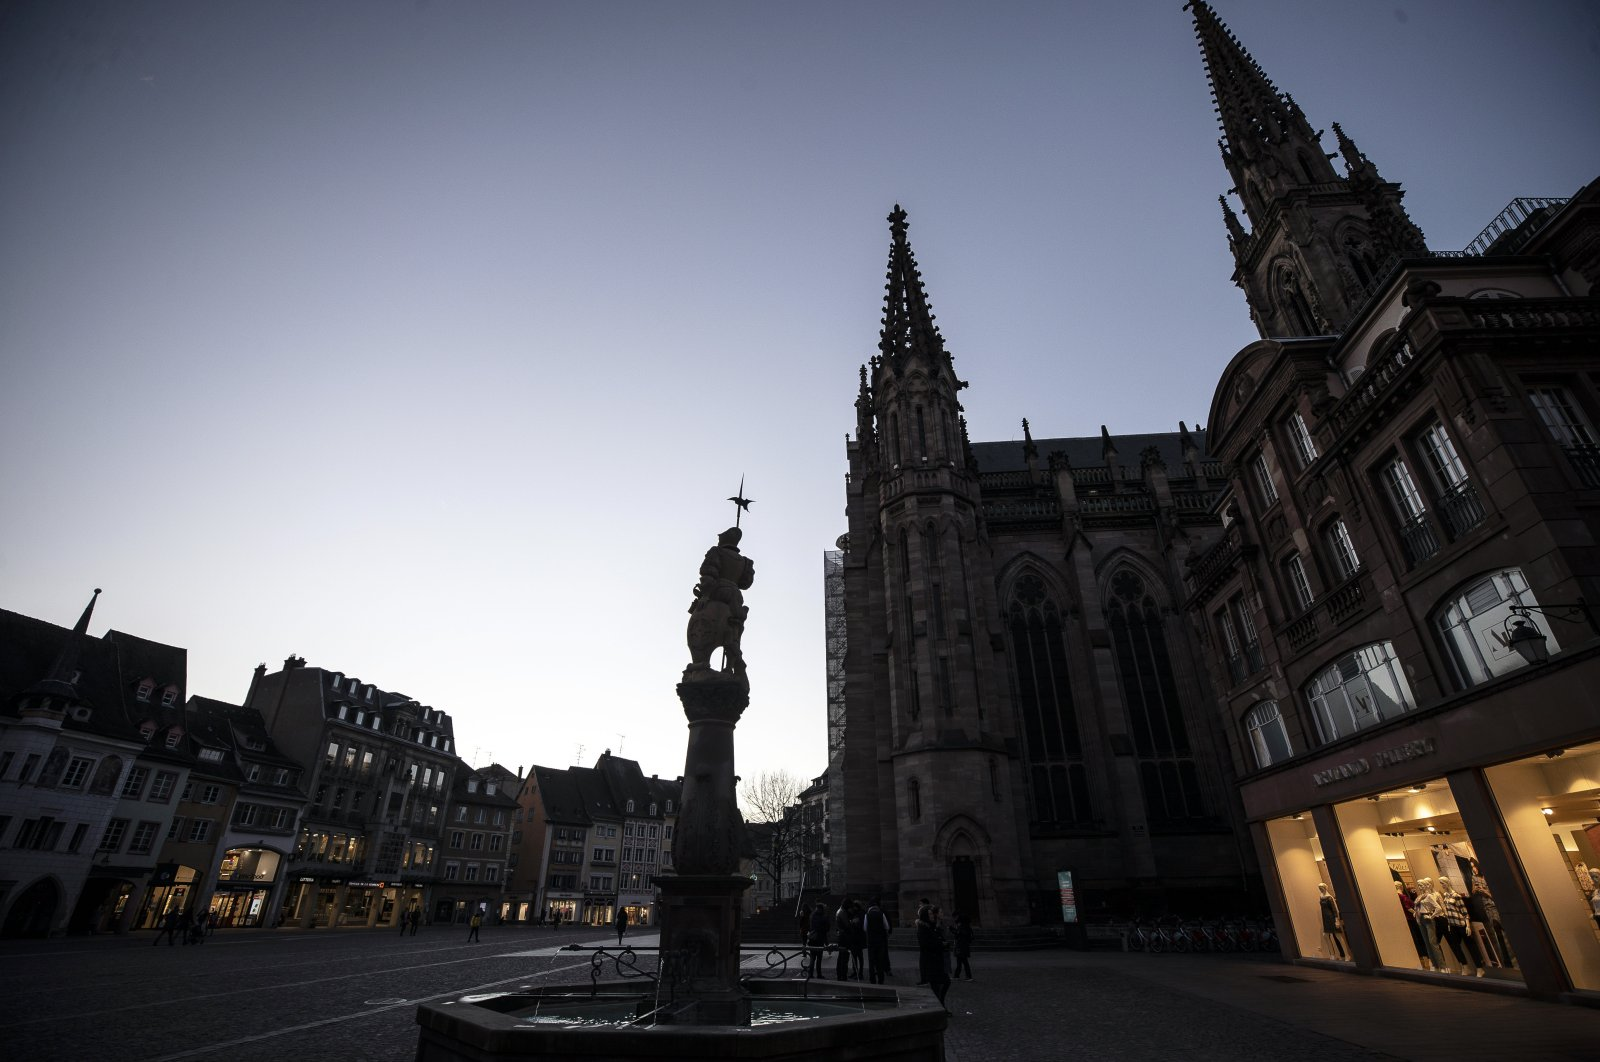 The center of Mulhouse, the epicenter of the outbreak in France, March 9, 2020. (AP Photo)